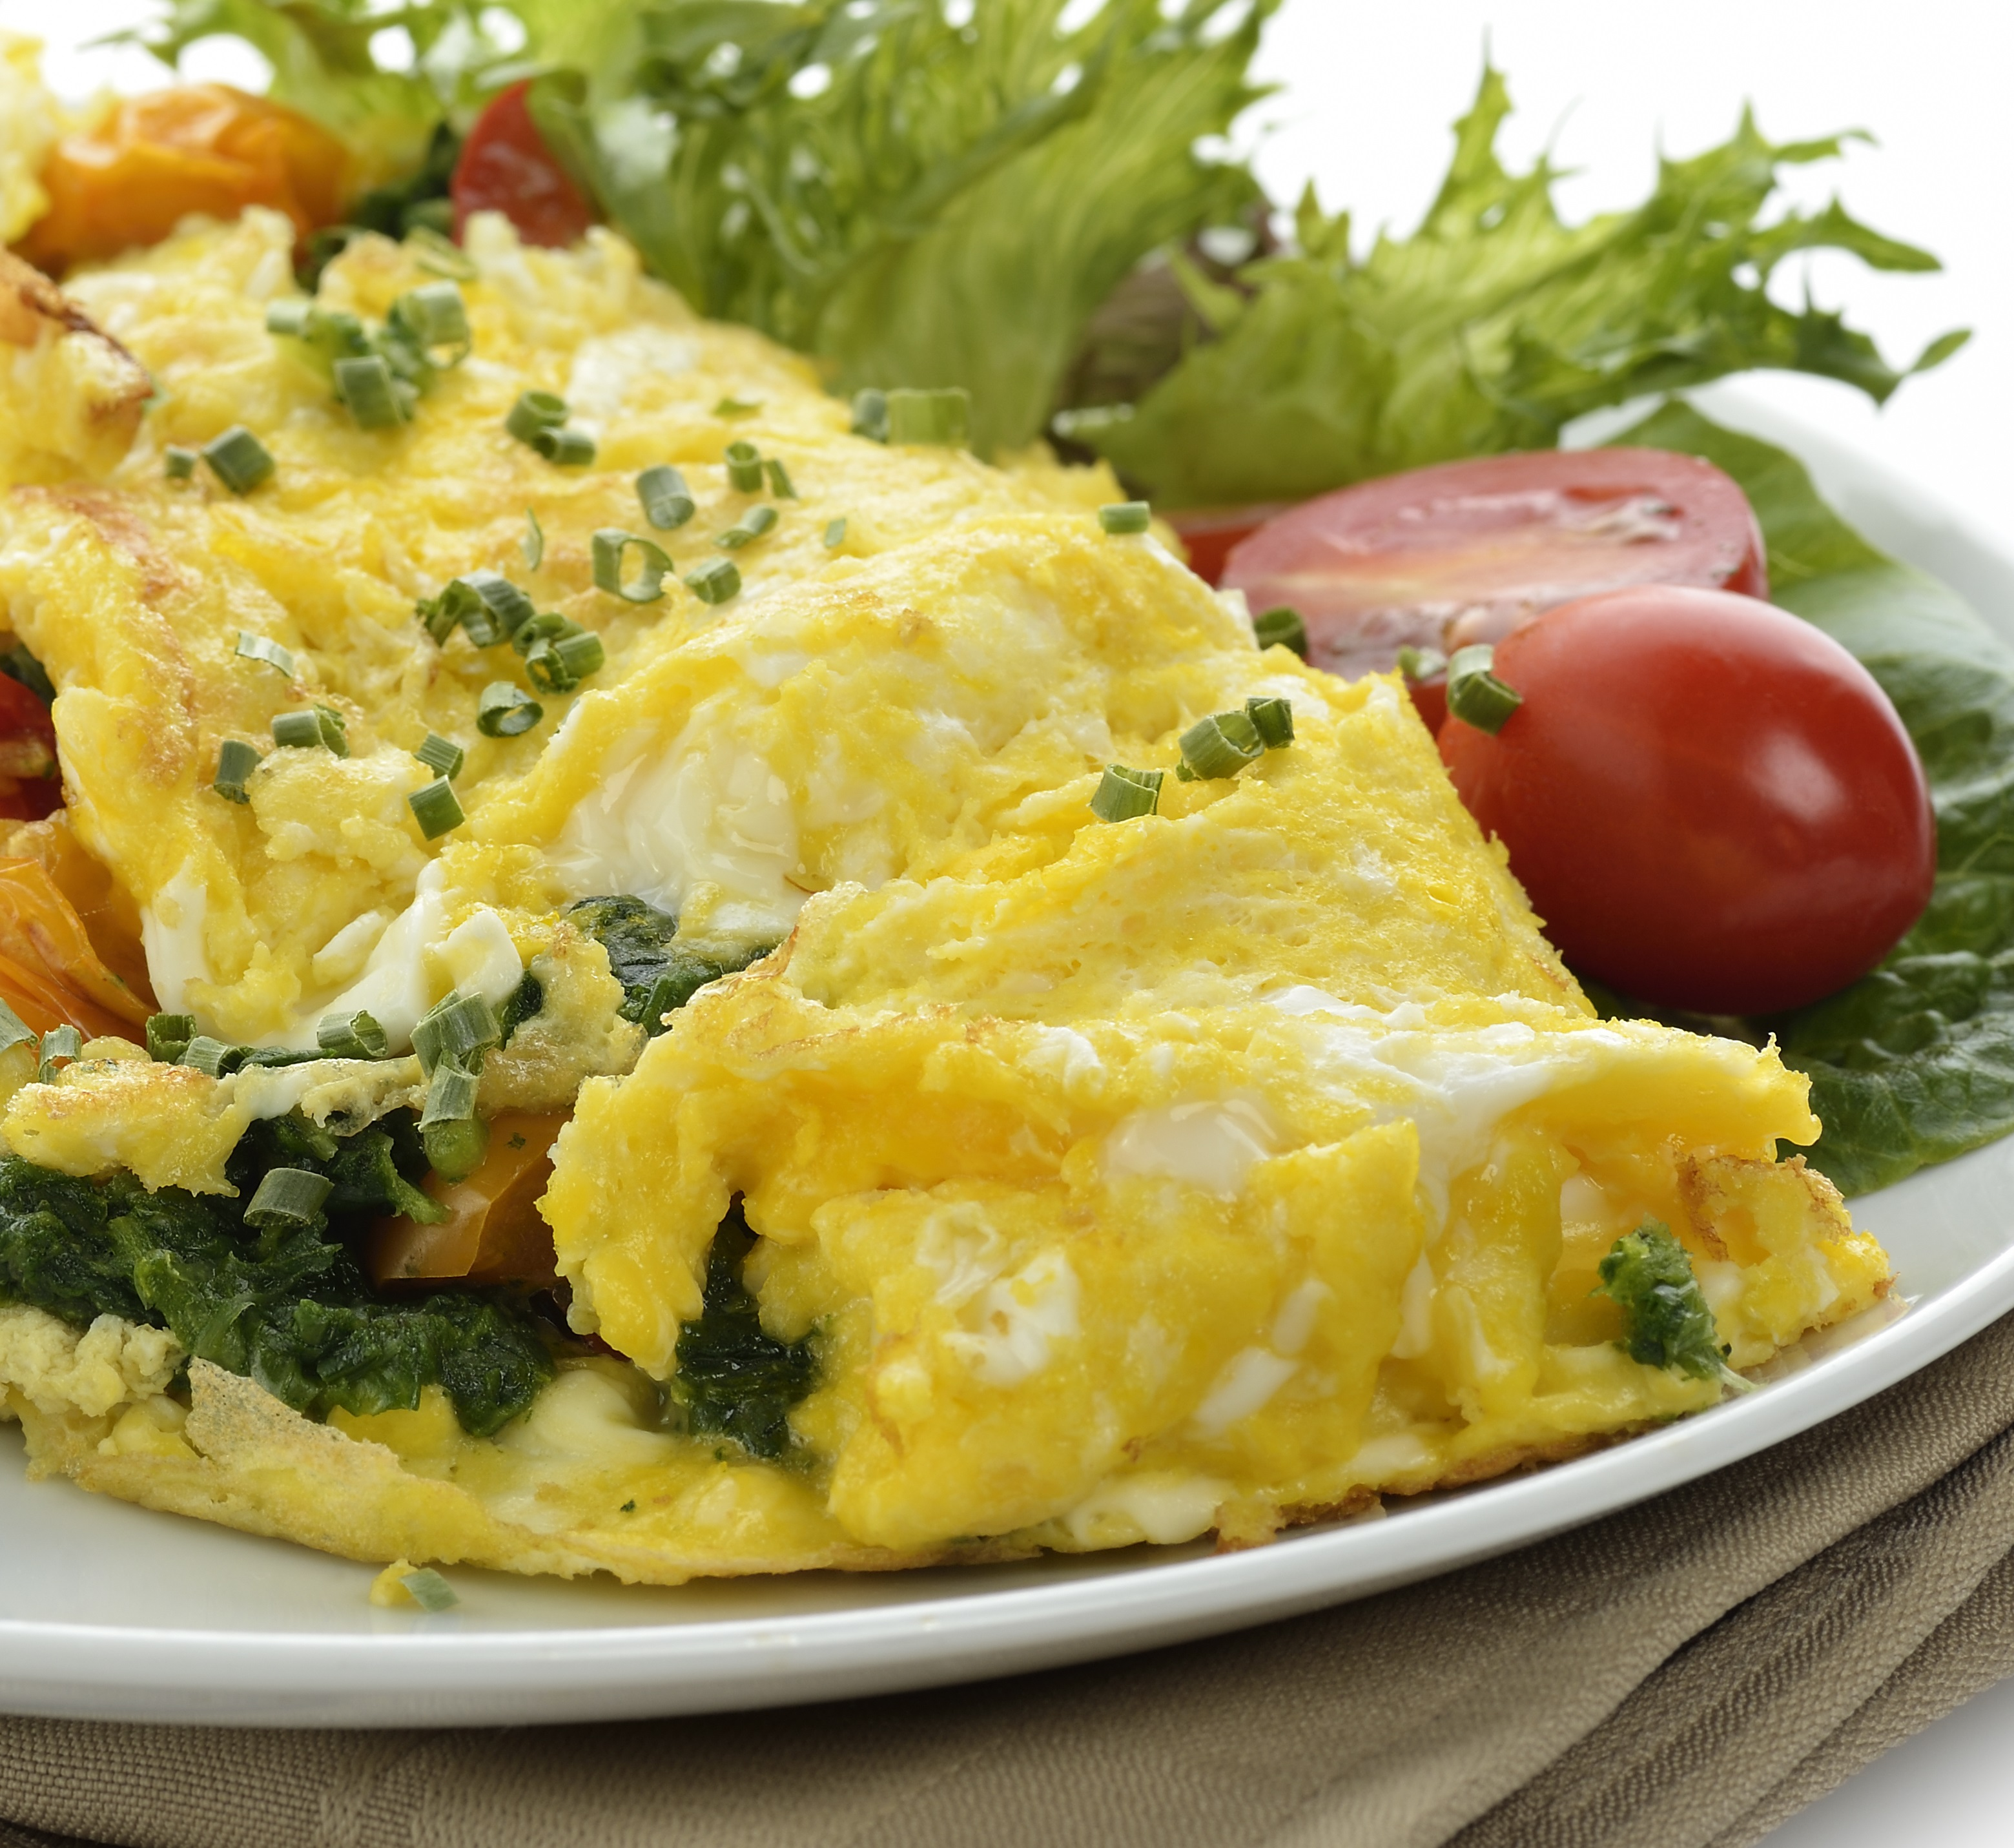 ... Breakfast Egg Dishes Greek Potato Spinach And Feta Cheese Omelet